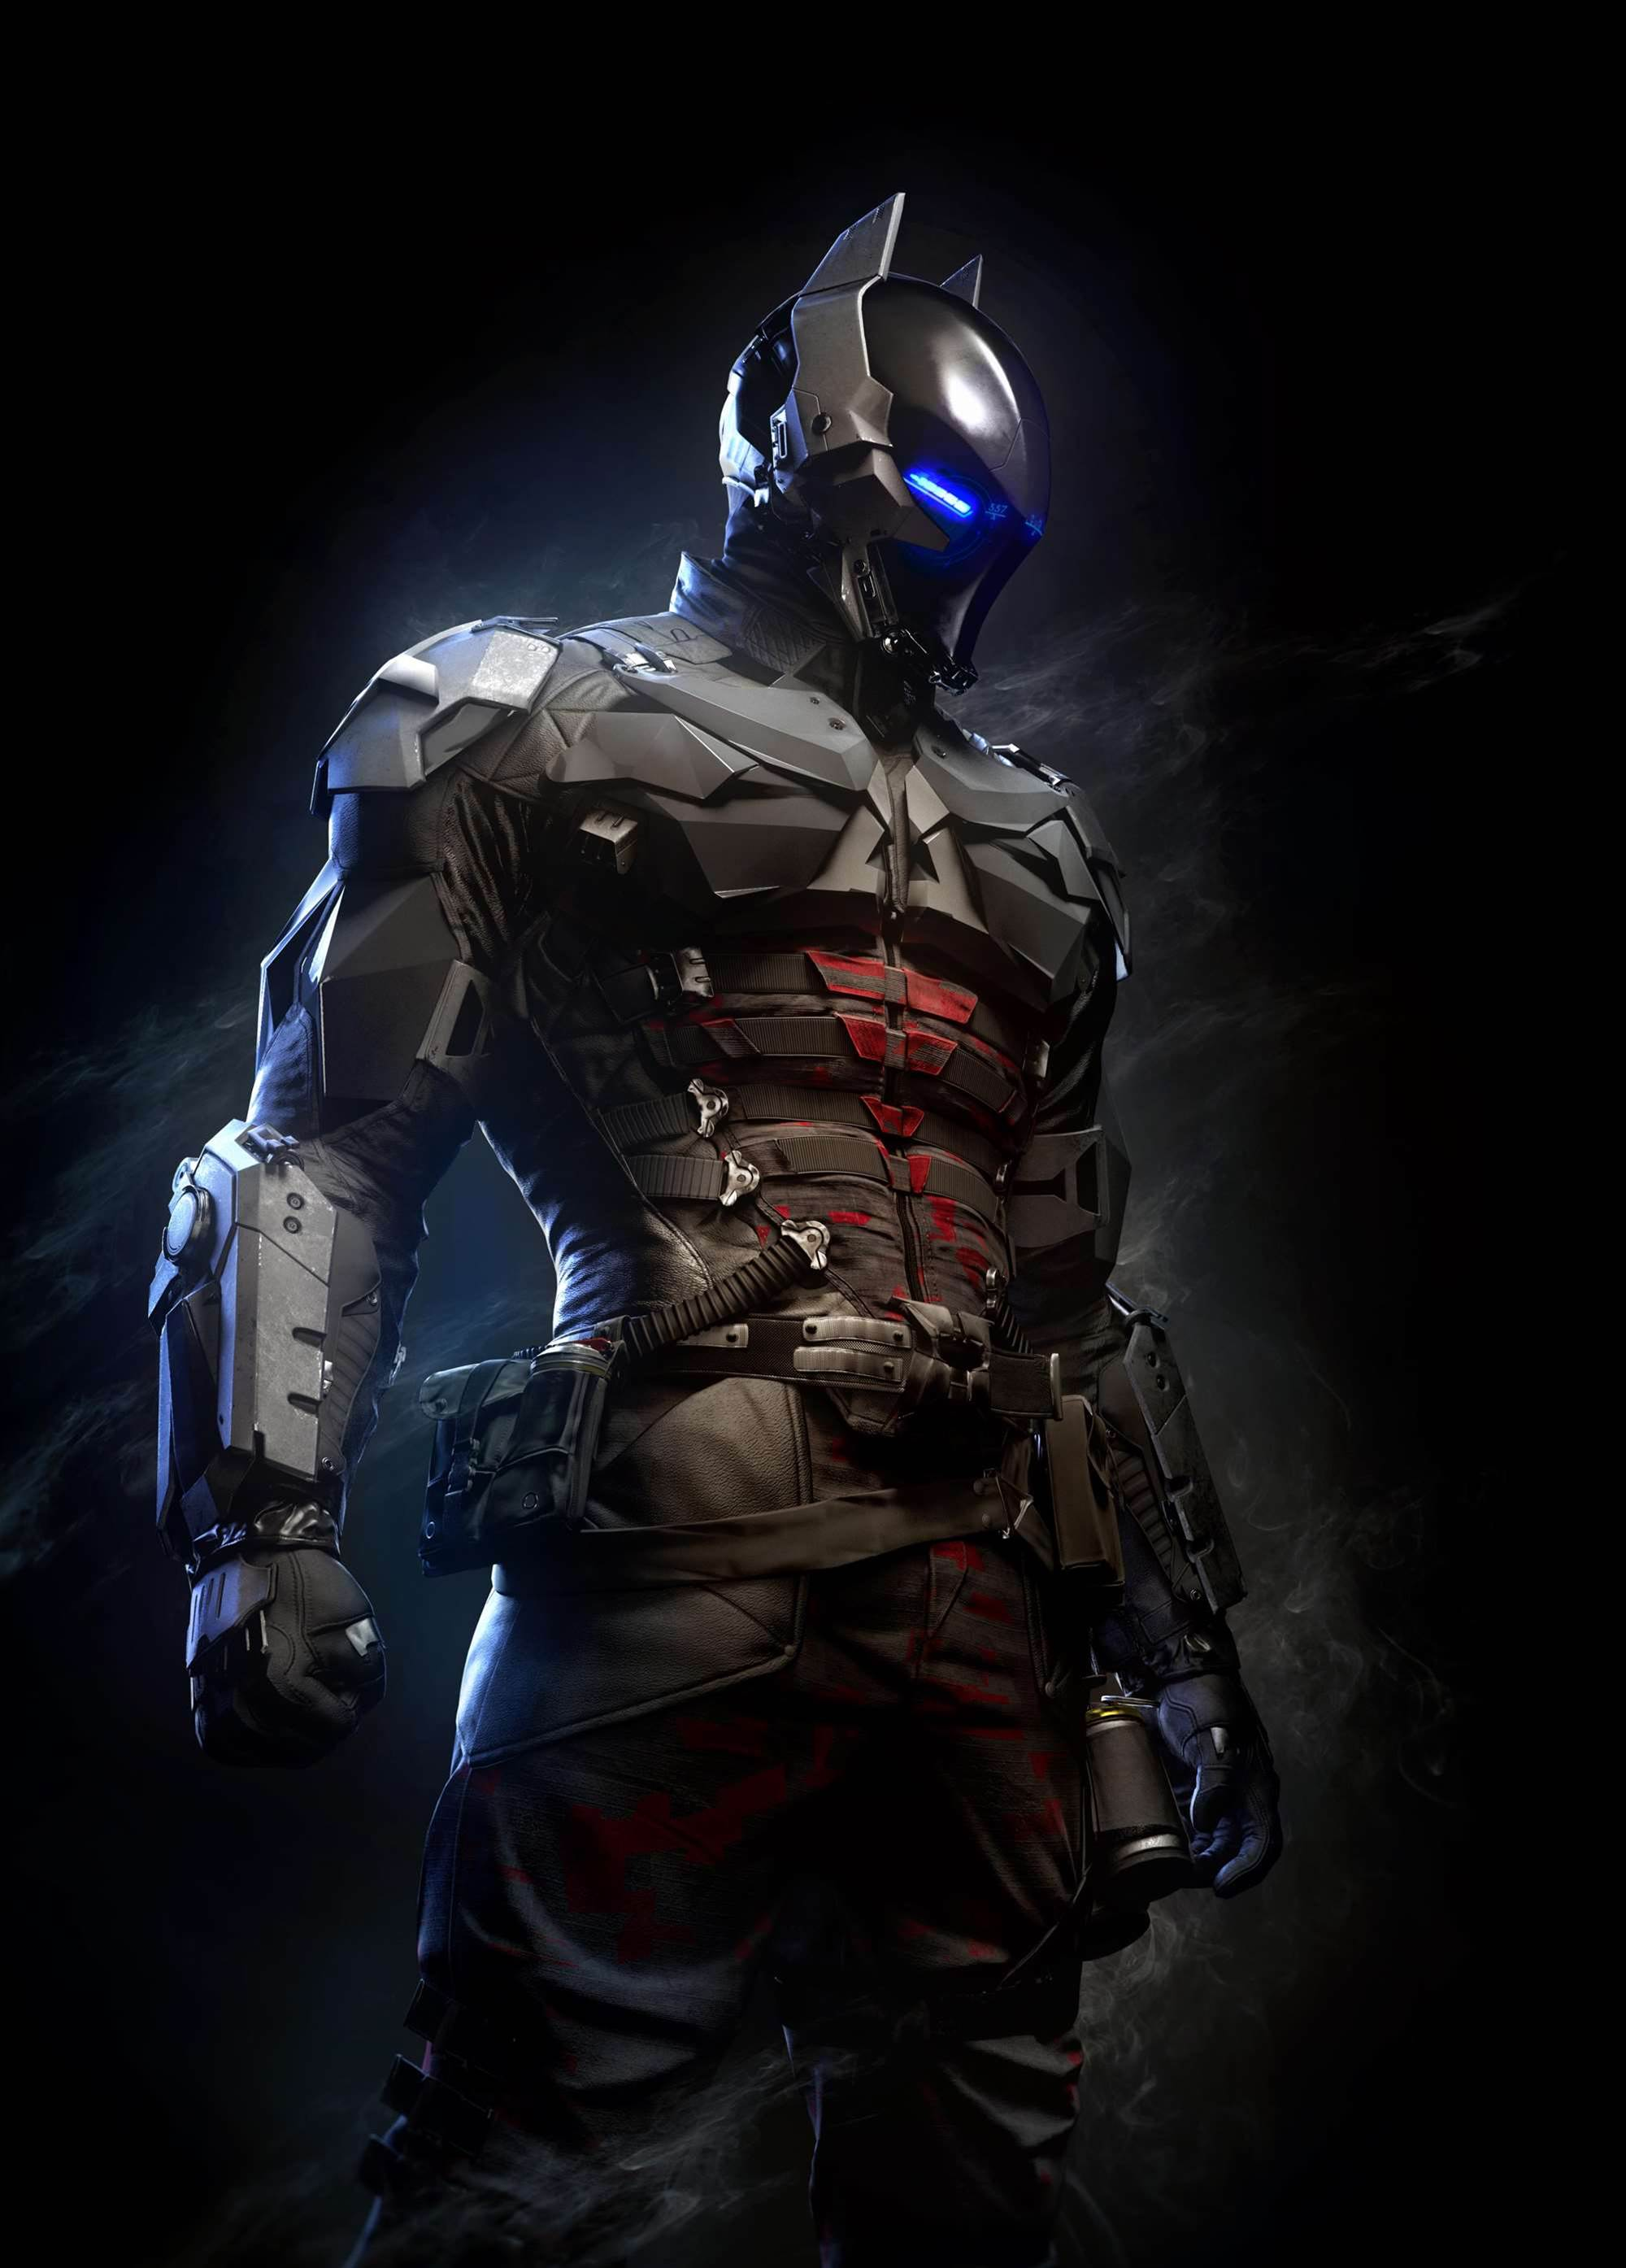 New Batman: Arkham Knight pics revealed!